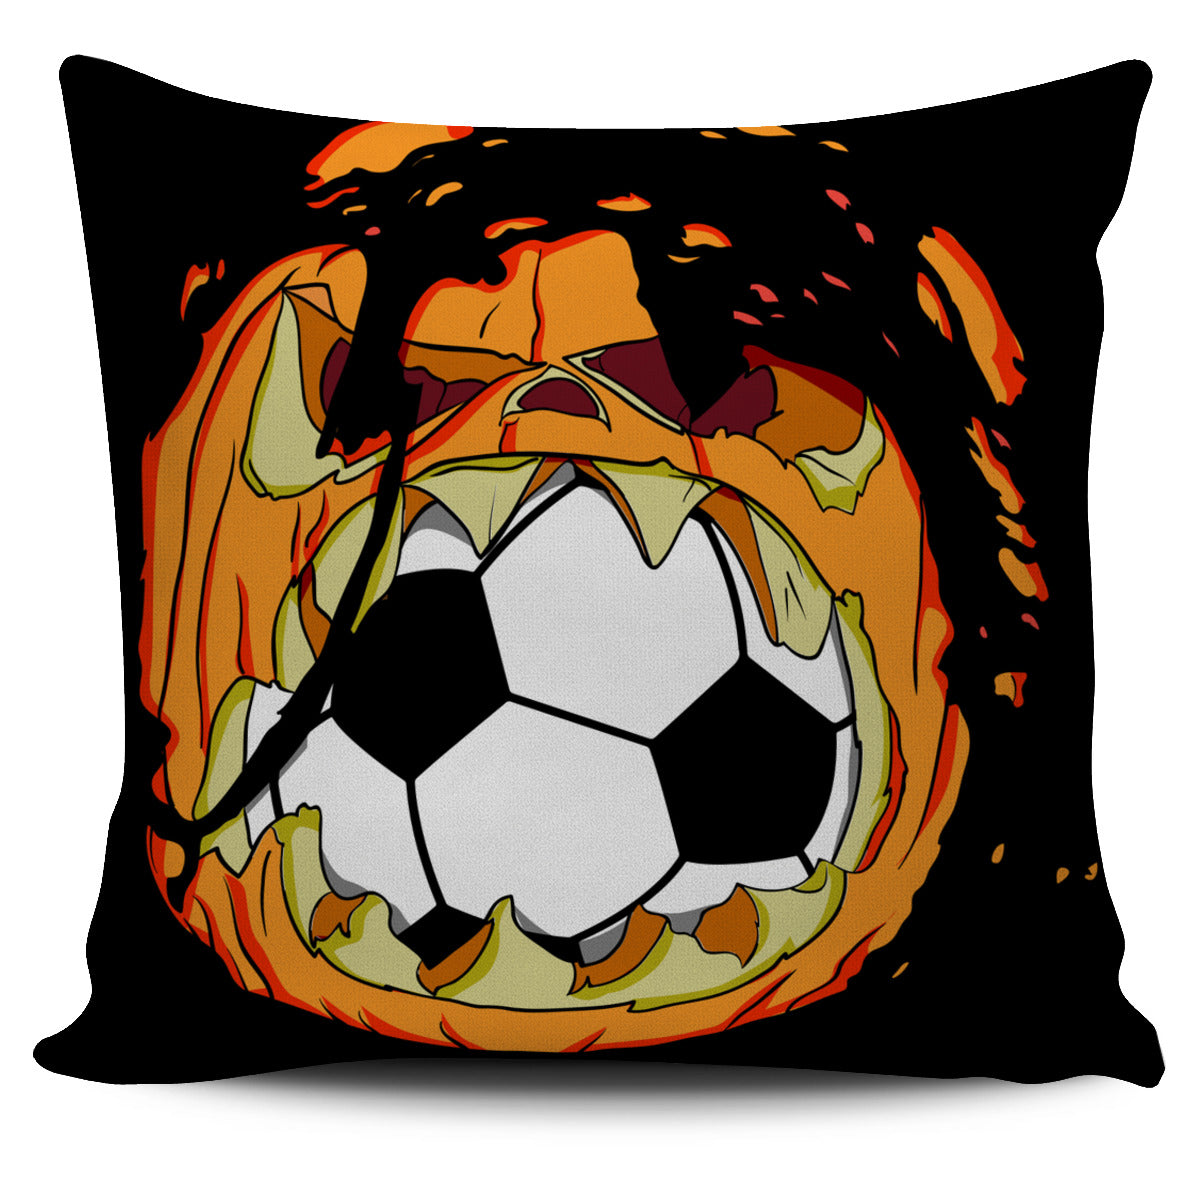 Soccer Pumpkin Pillow Cover EV61